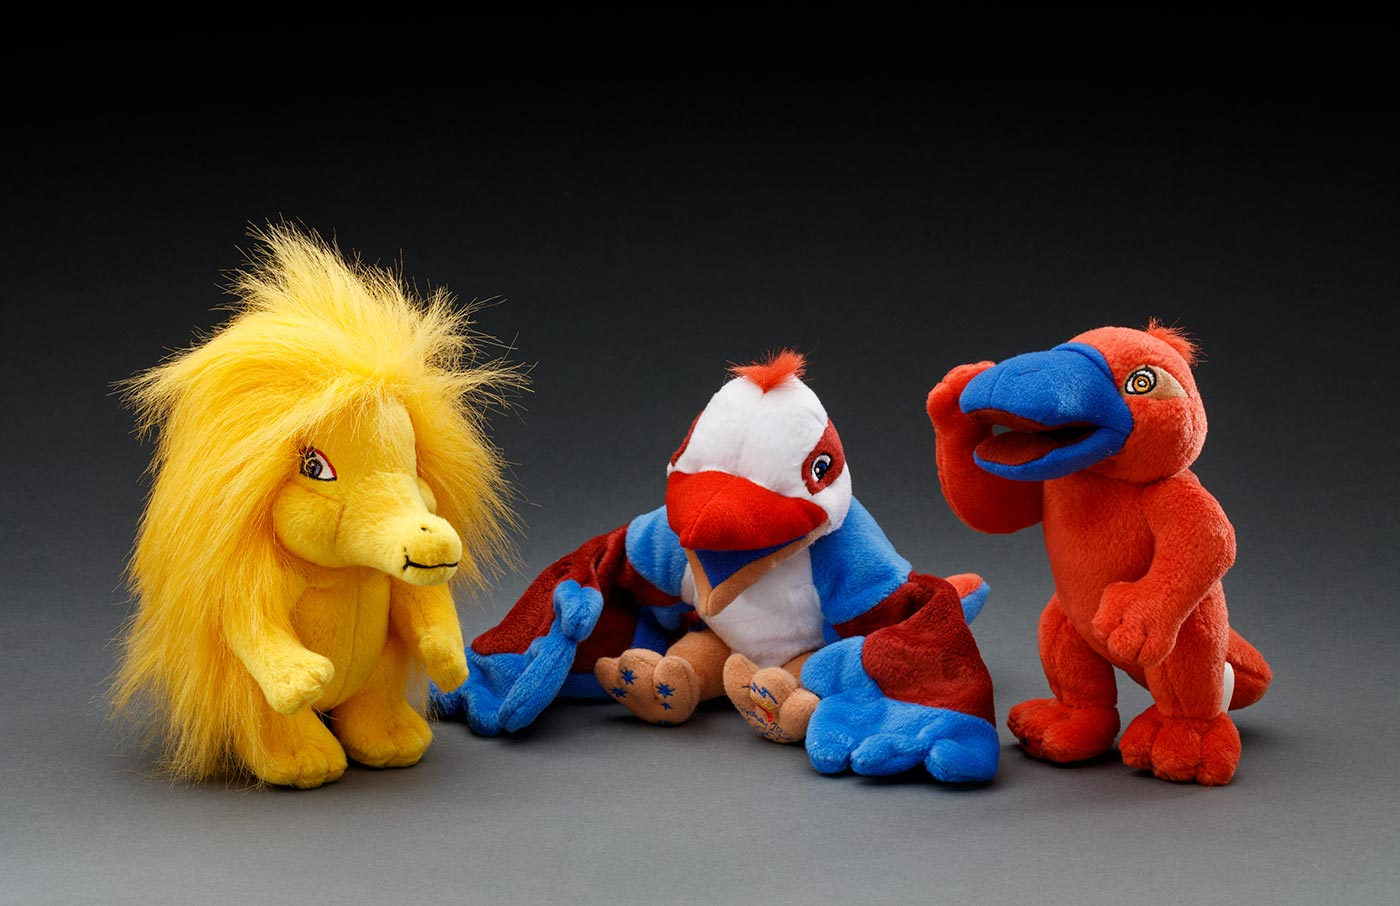 Three colourful stuffed toy mascots including an echidna, kookaburra and a platypus. - click to view larger image